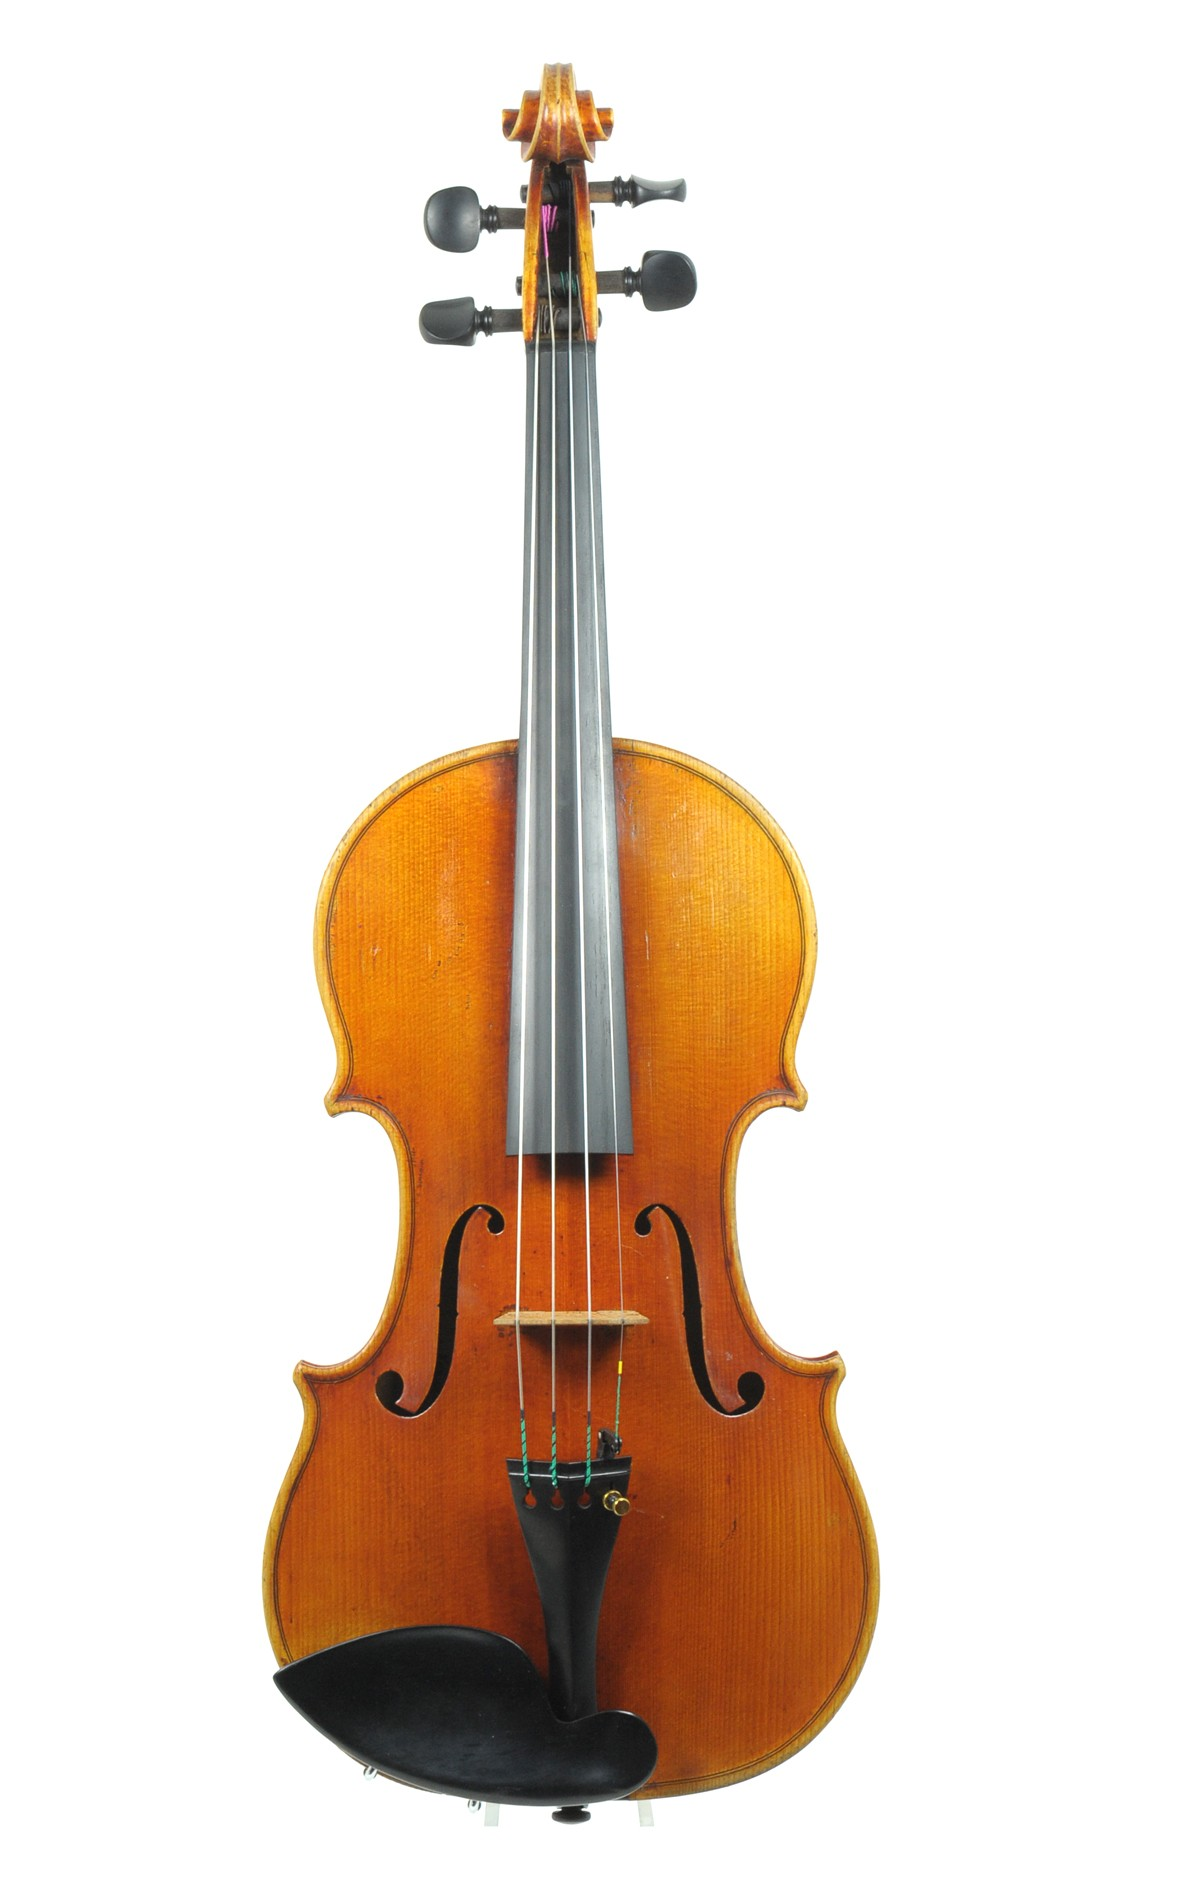 Georg Winterling, violin 1922 - top